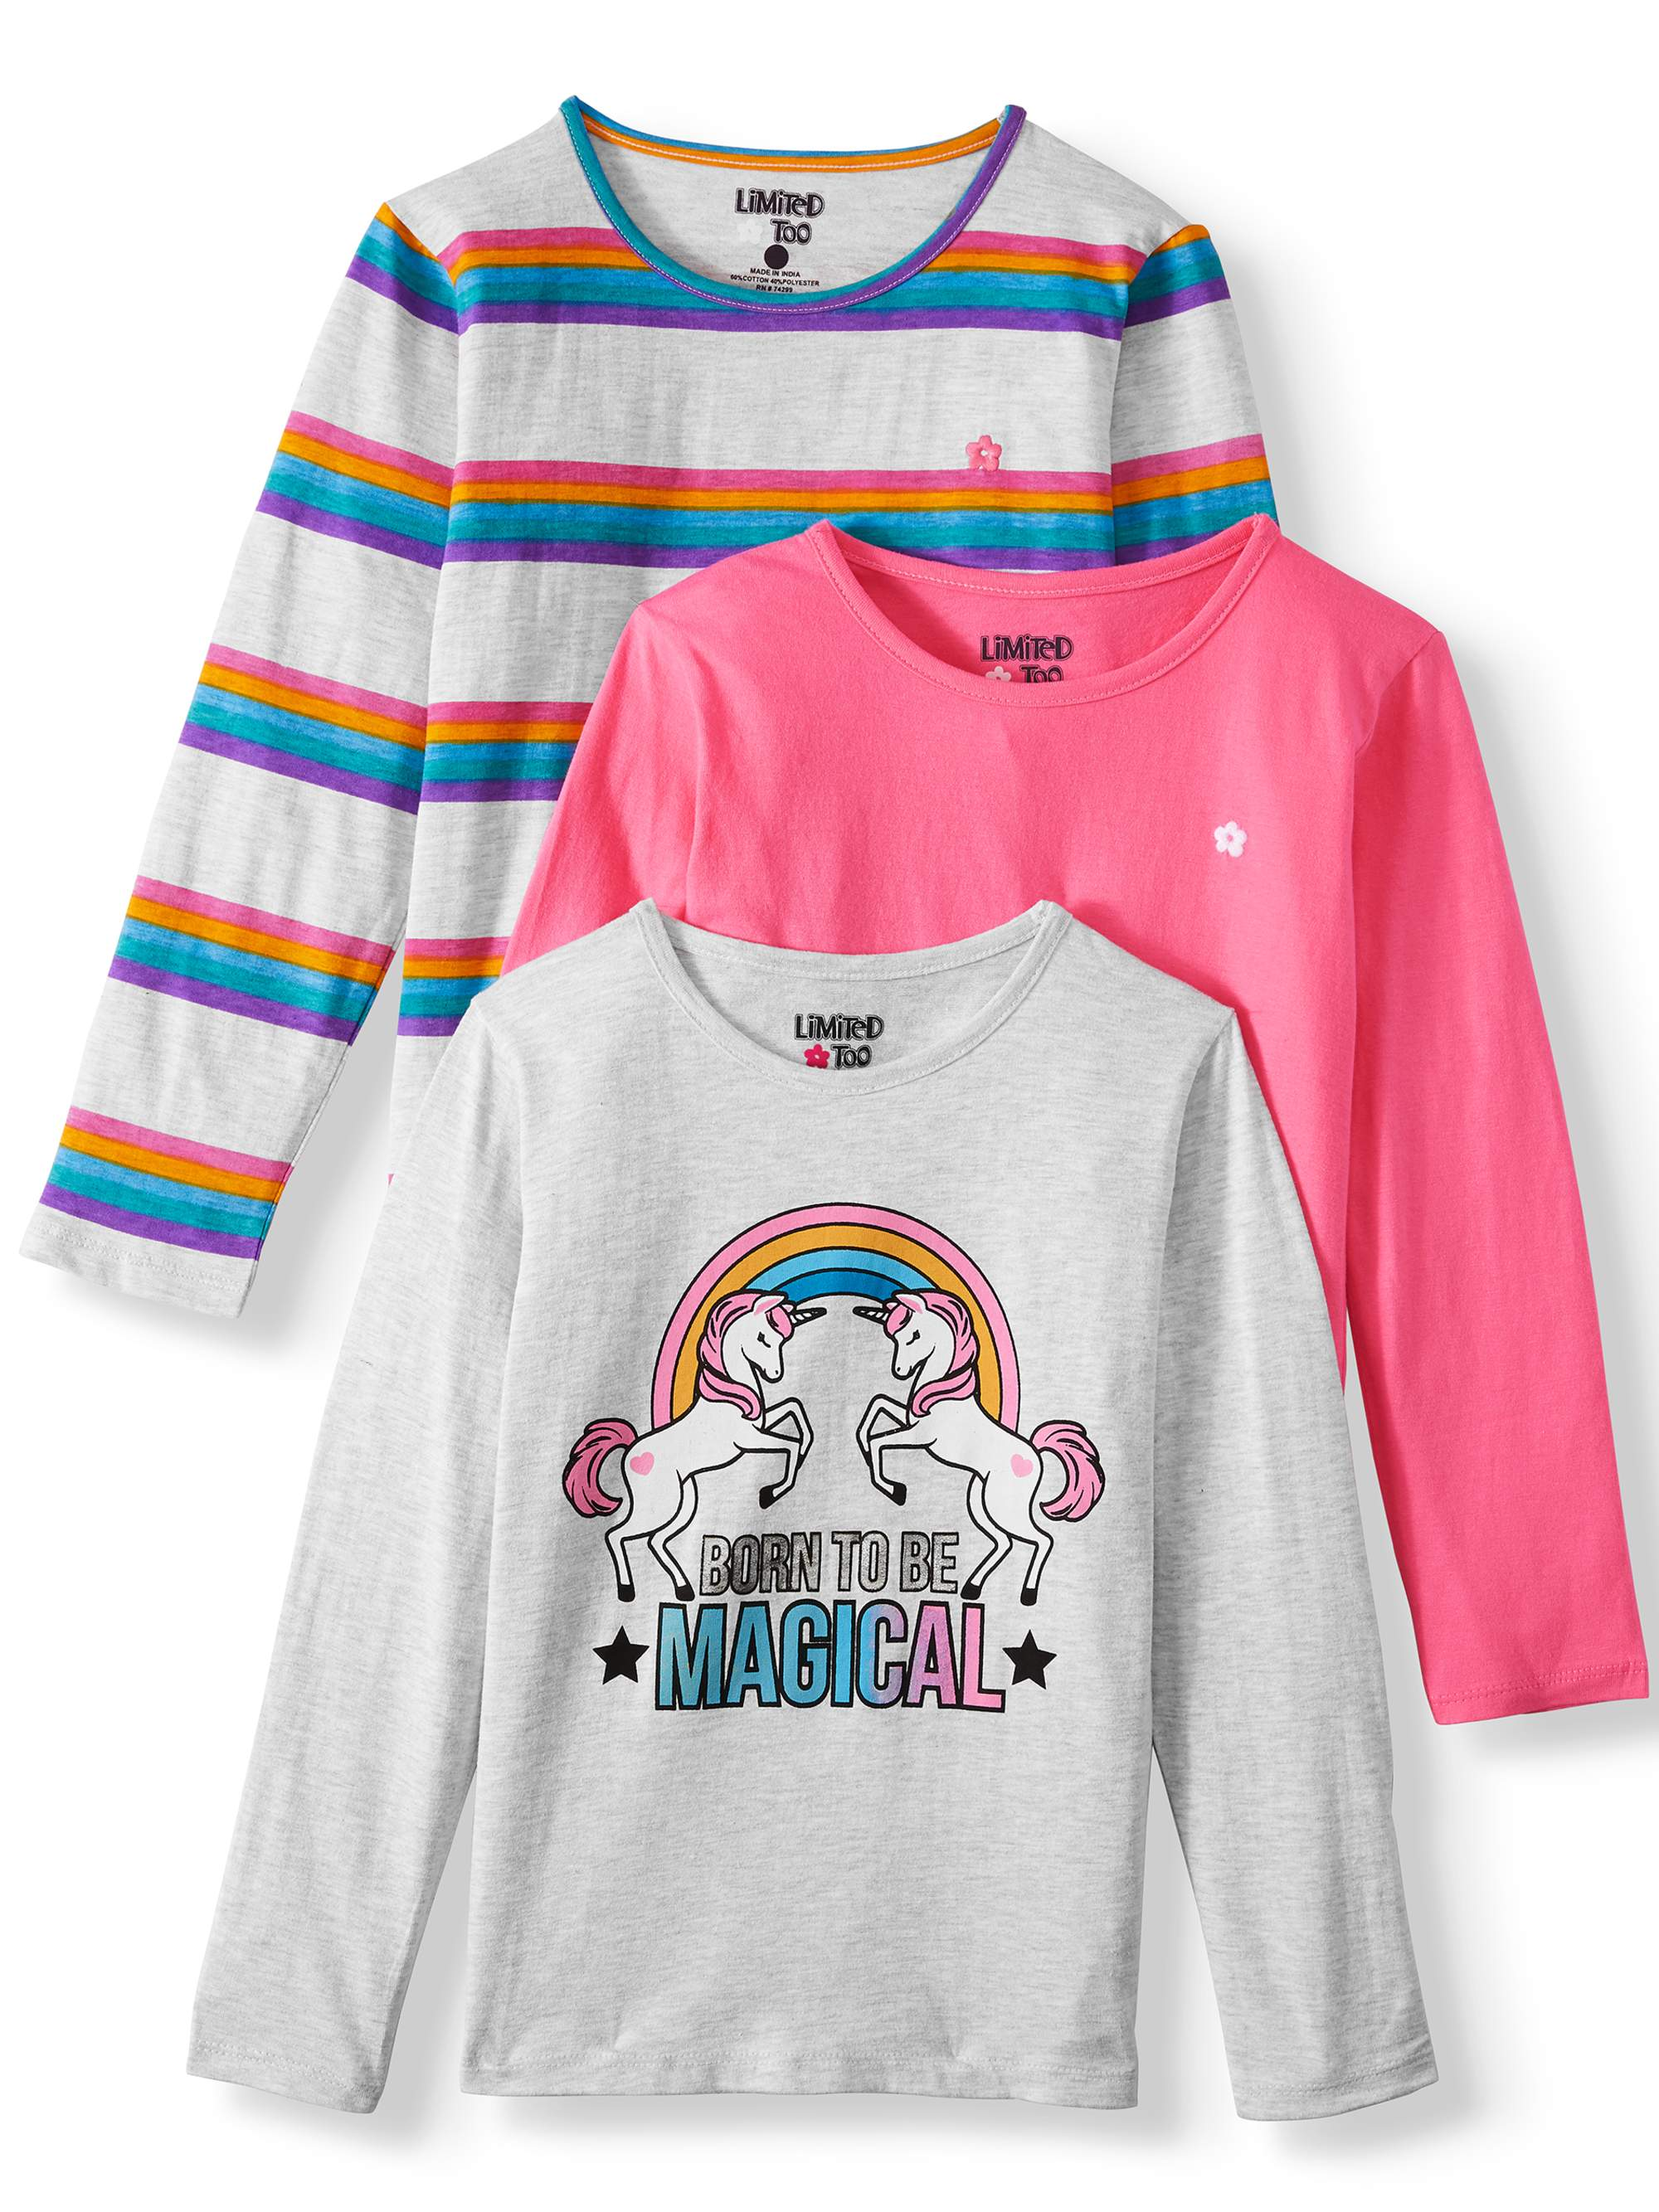 Limited Too Girls Short Sleeve Graphic Fashion T-Shirt 3 Pack